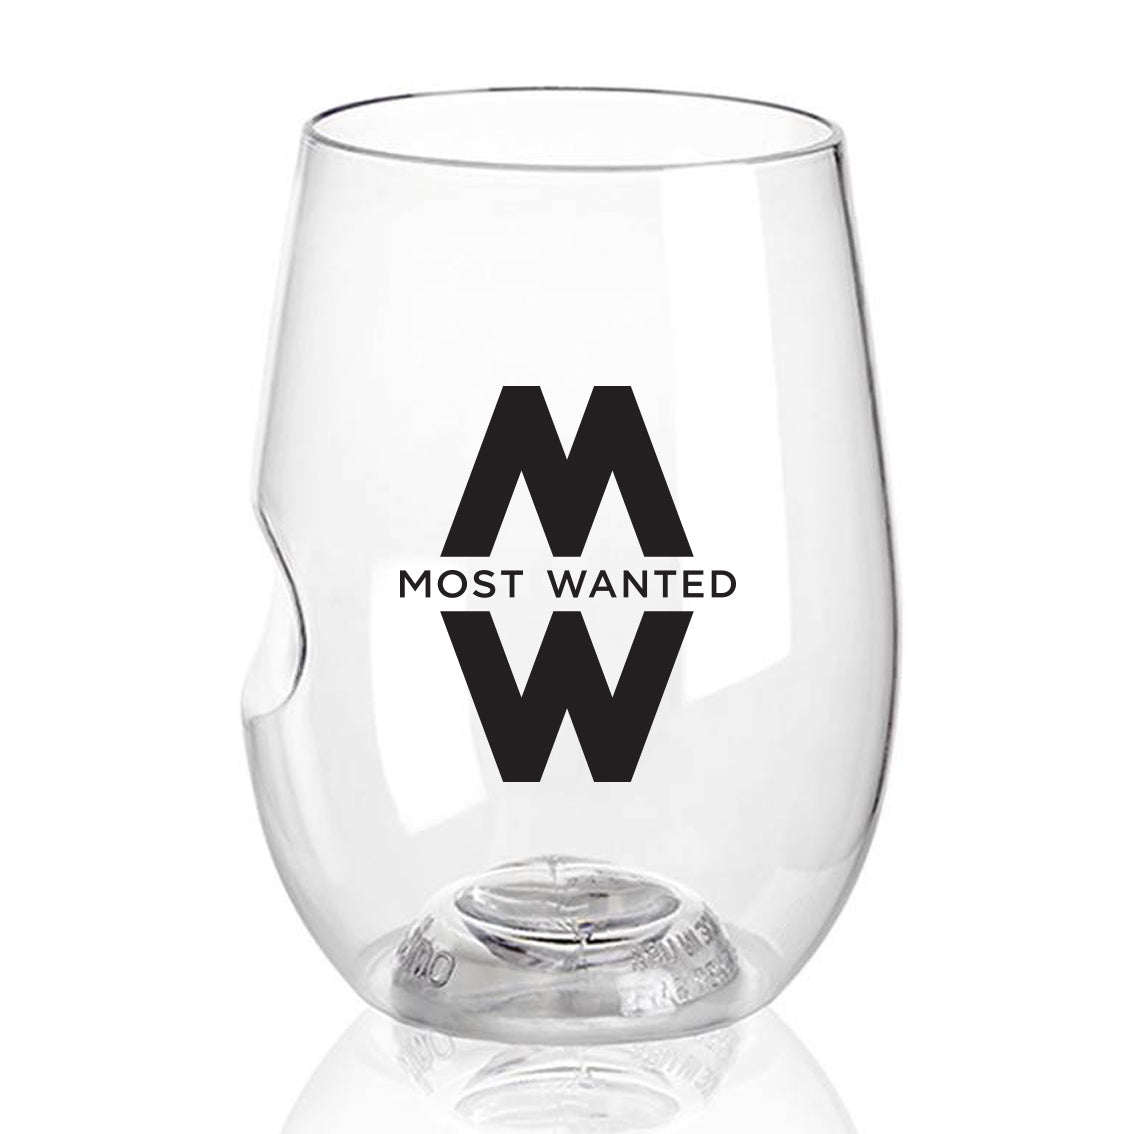 Most Wanted govino glass